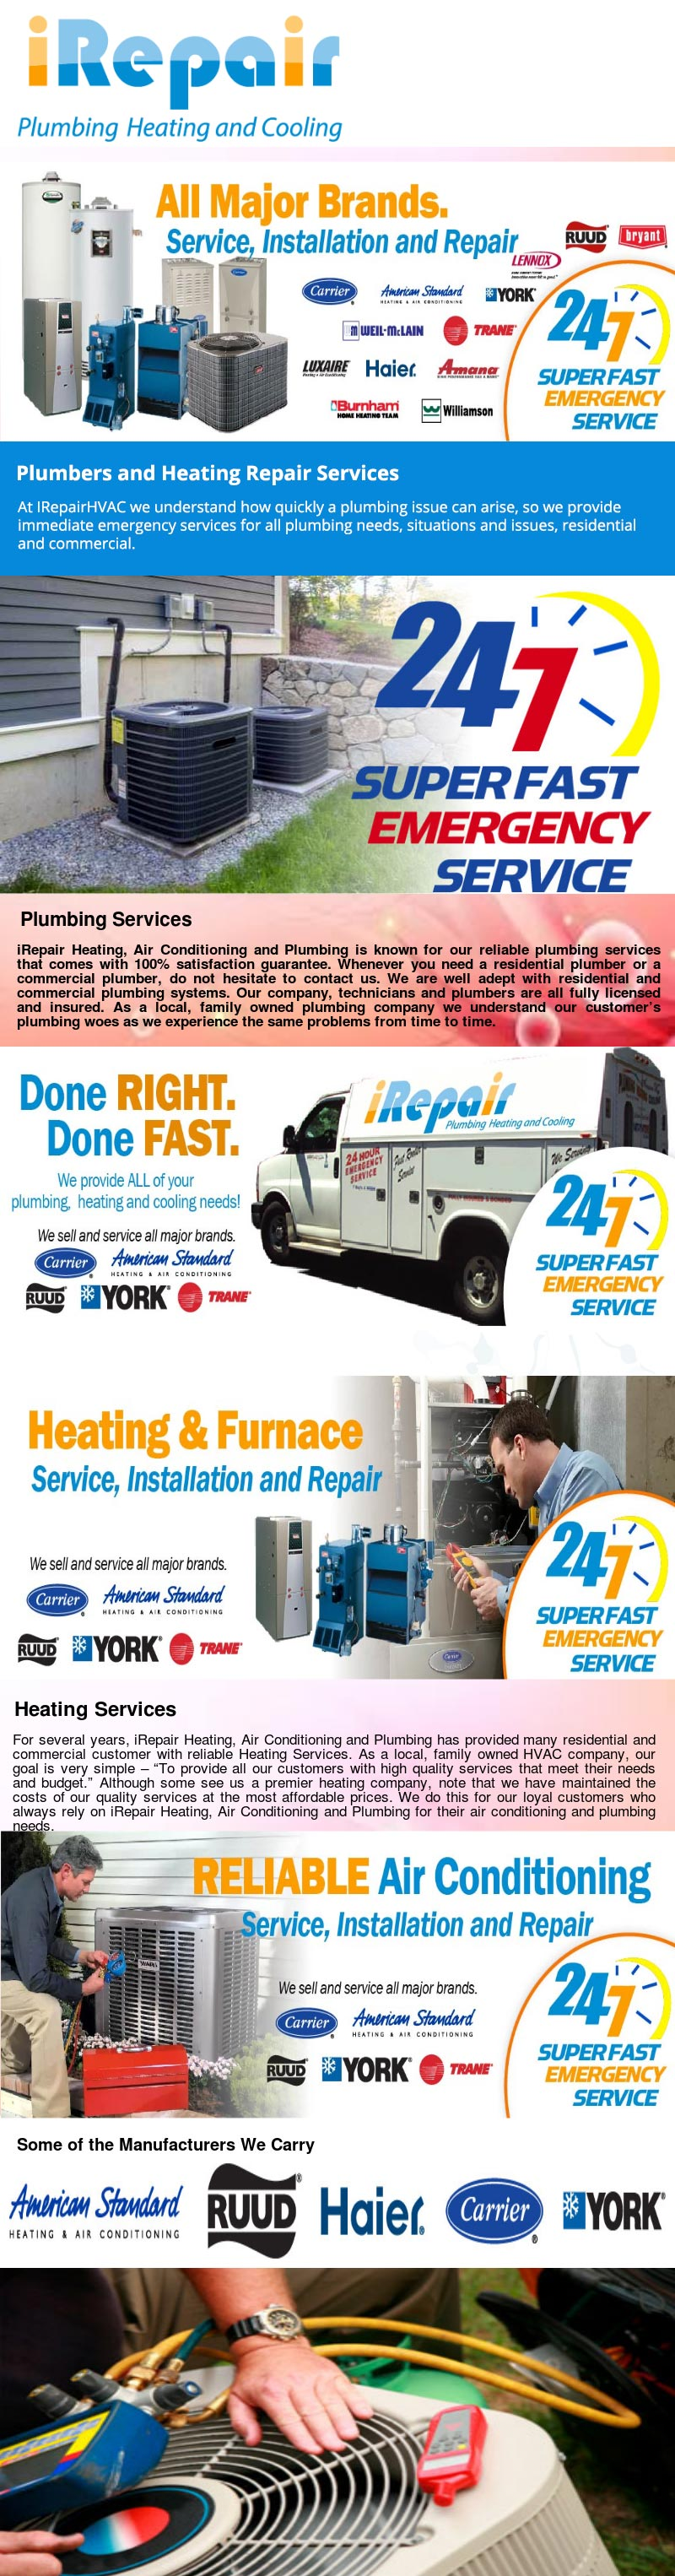 iRepair Plumbing Heating